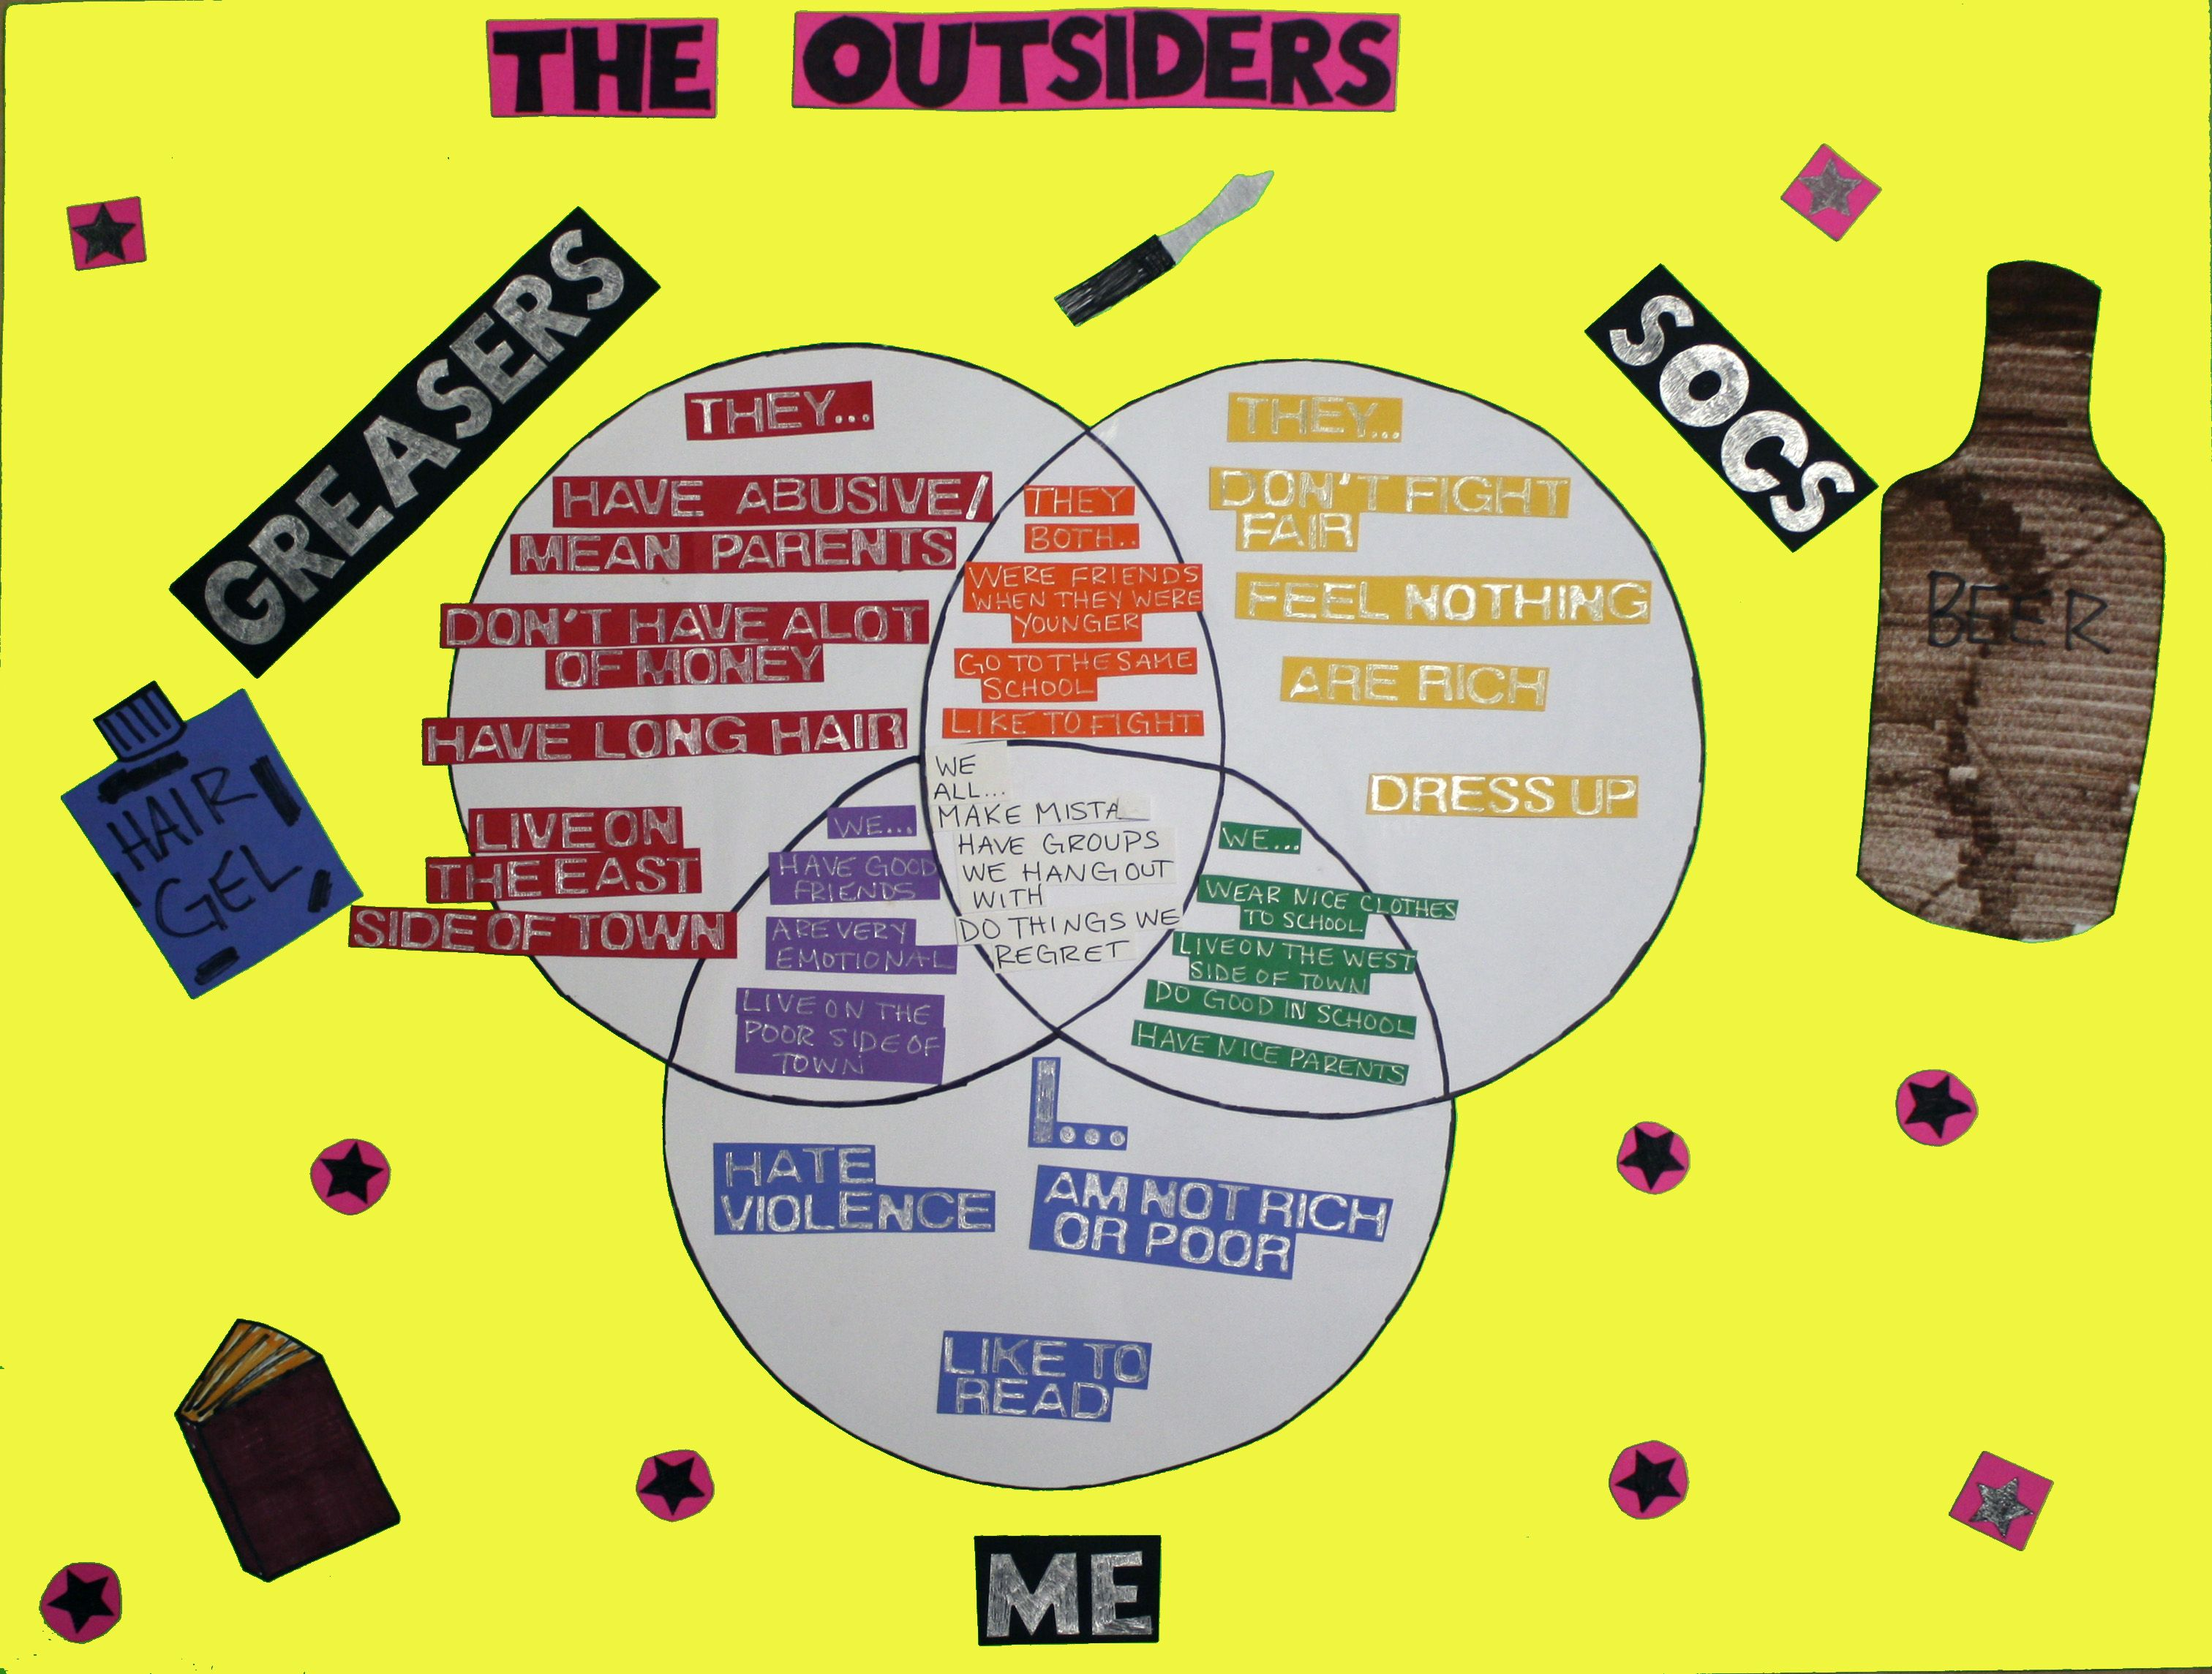 the outsiders by s e hinton final project compare and contrast your students will stretch their thinking as they work to compare and contrast themselves the socs and greasers